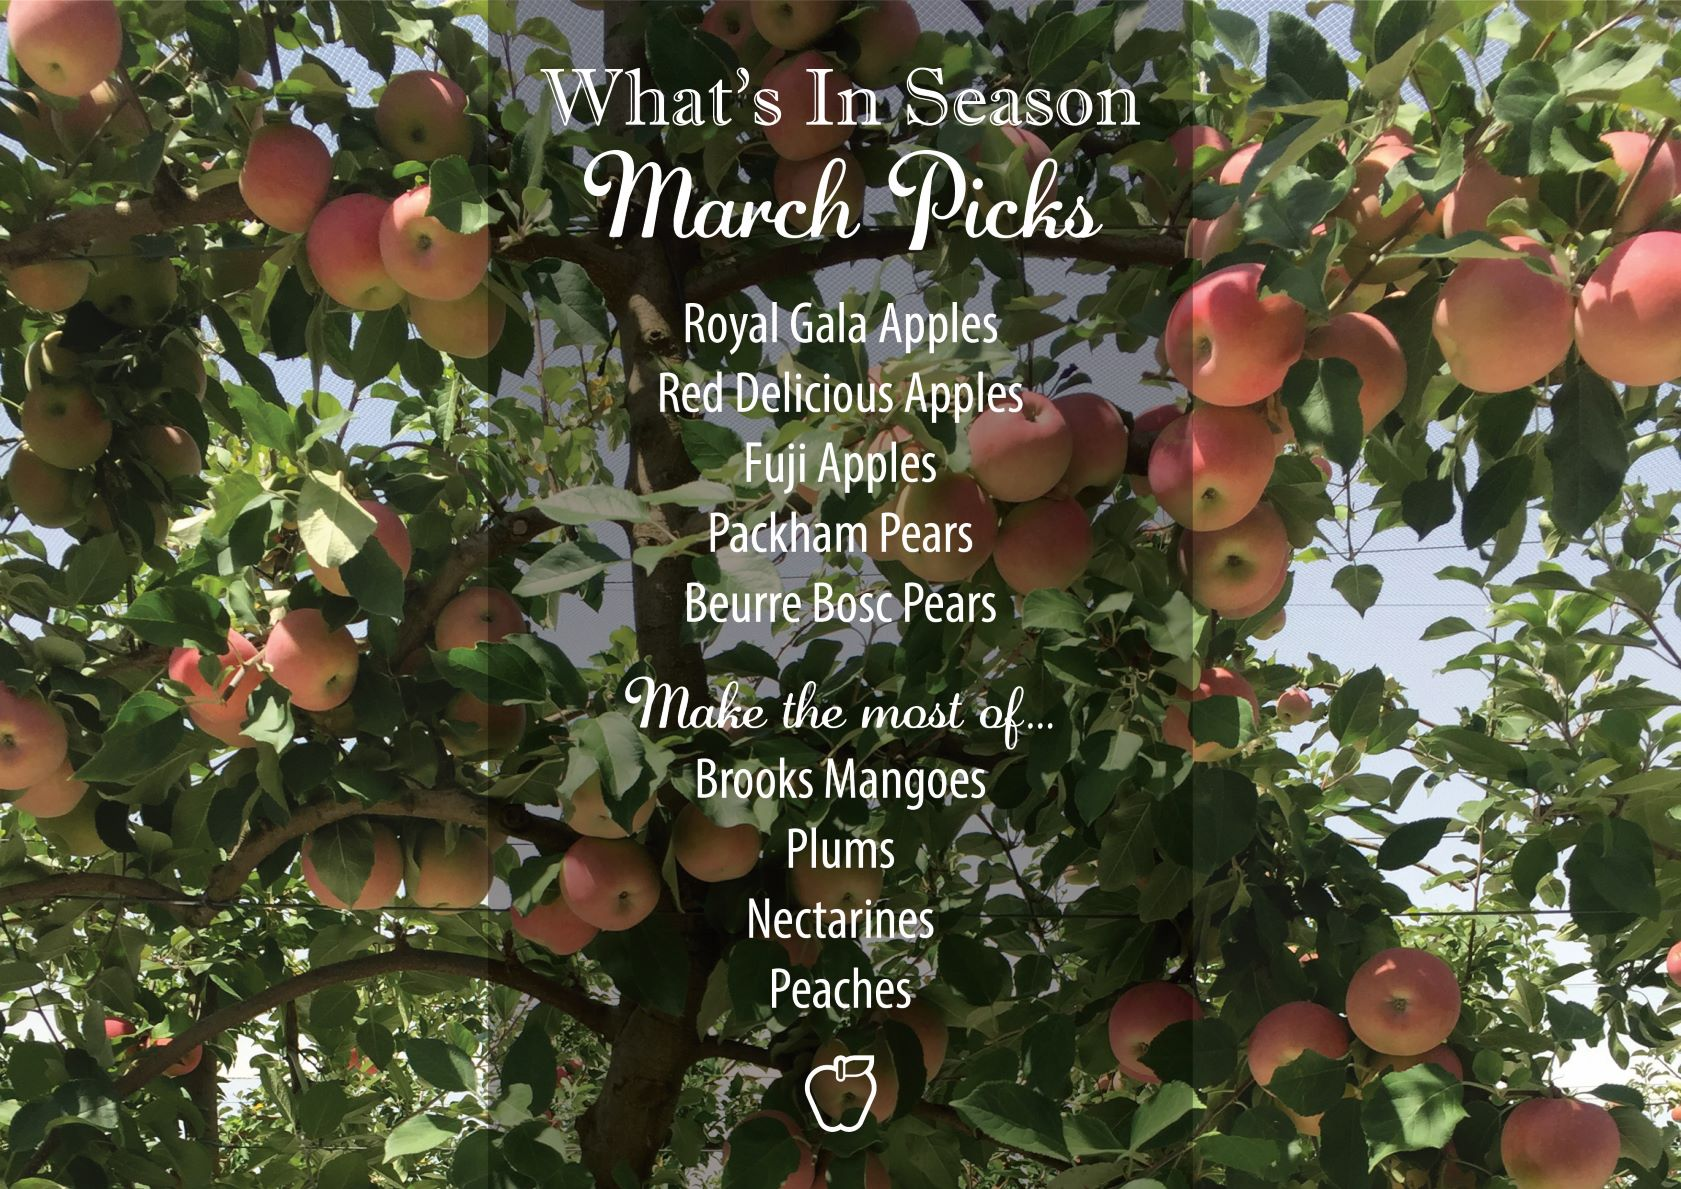 What's in season - March Picks